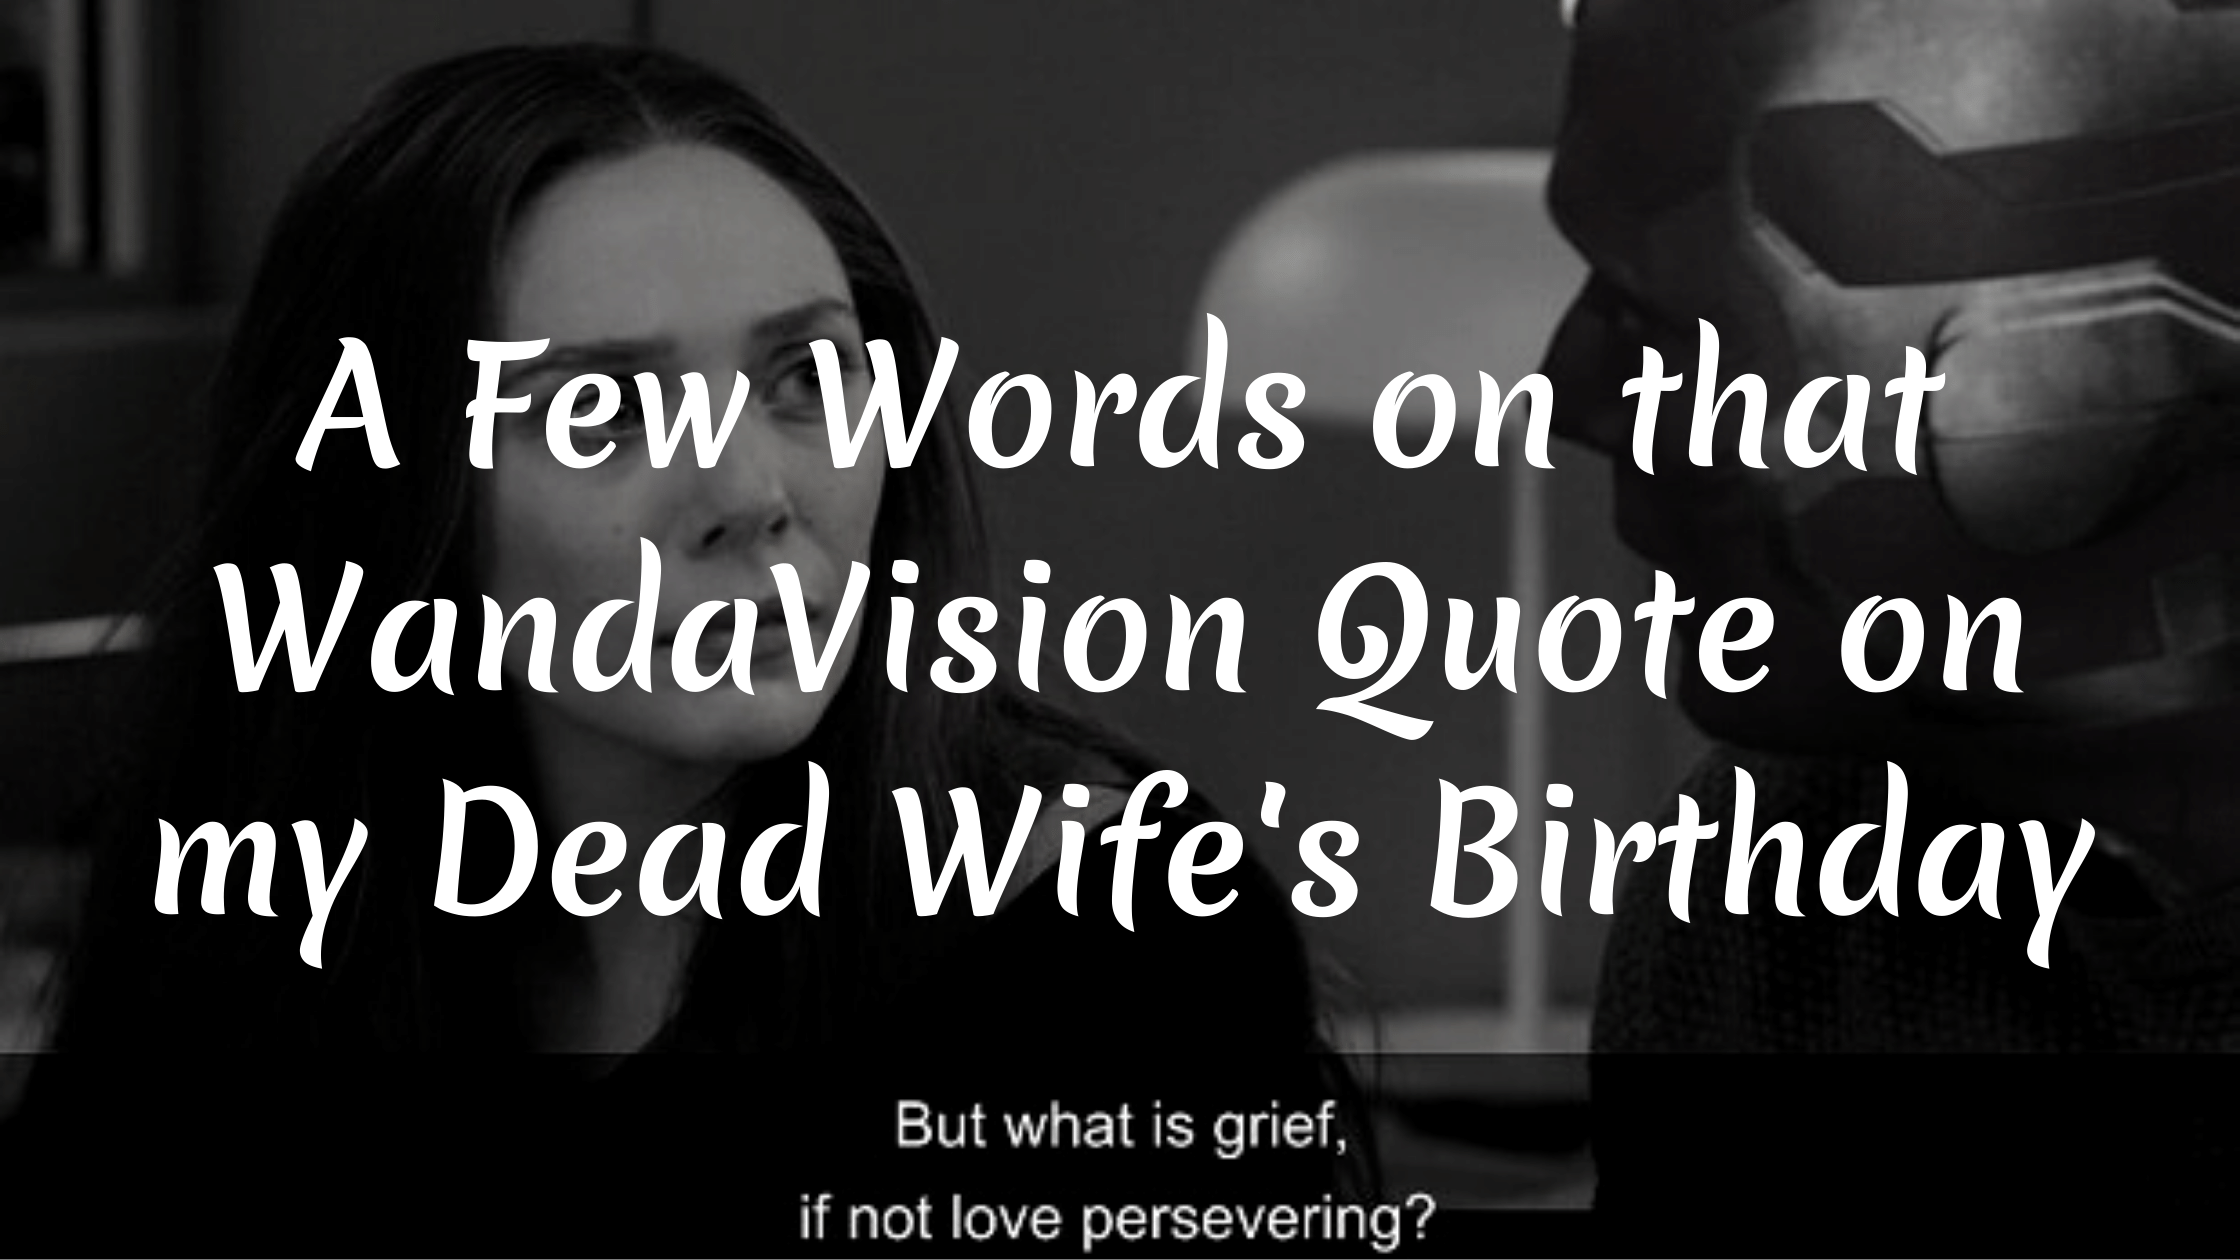 """A grayscale detail of the WandaVision scene where Vision says """"But what is grief if not love persevering"""" with a text overlay that says """"A few words on that WandaVision quote on my dead wife's birthday"""""""